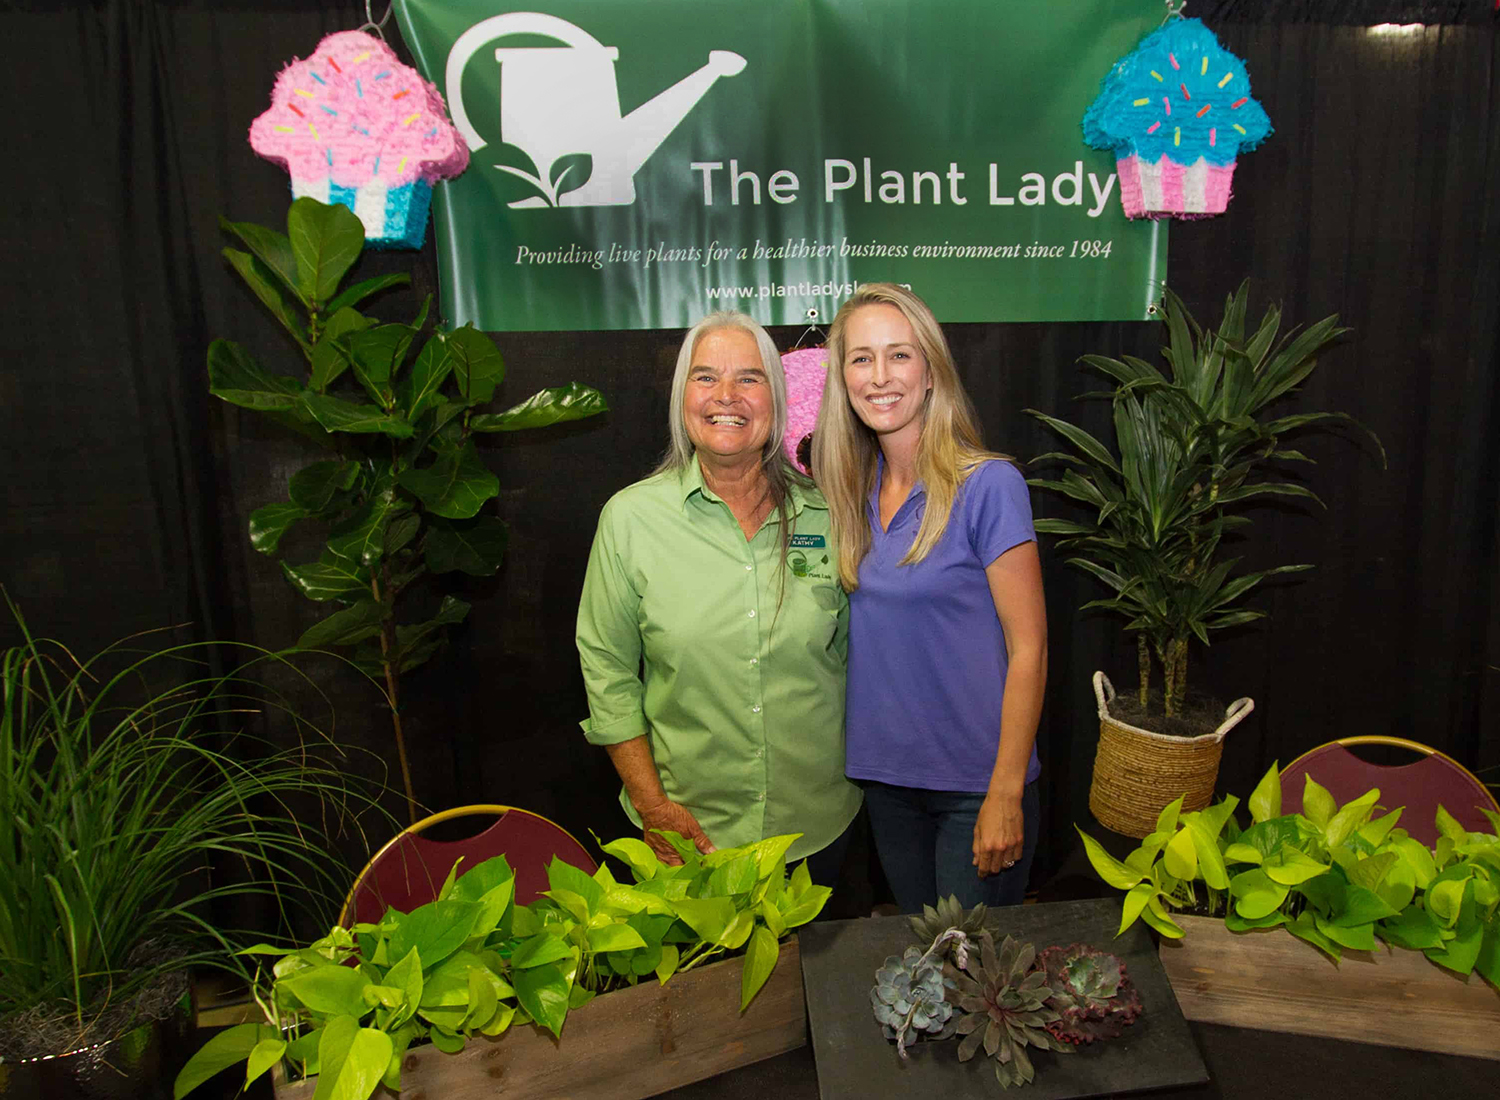 The Plant Ladies:  Kathy Longacre, Founder (left) and Samantha Young, Owner & Operator (right) at the 2019 San Luis Obispo Chamber Expo.  The Plant Lady has been a member of the San Luis Obispo Chamber of Commerce since 1985.